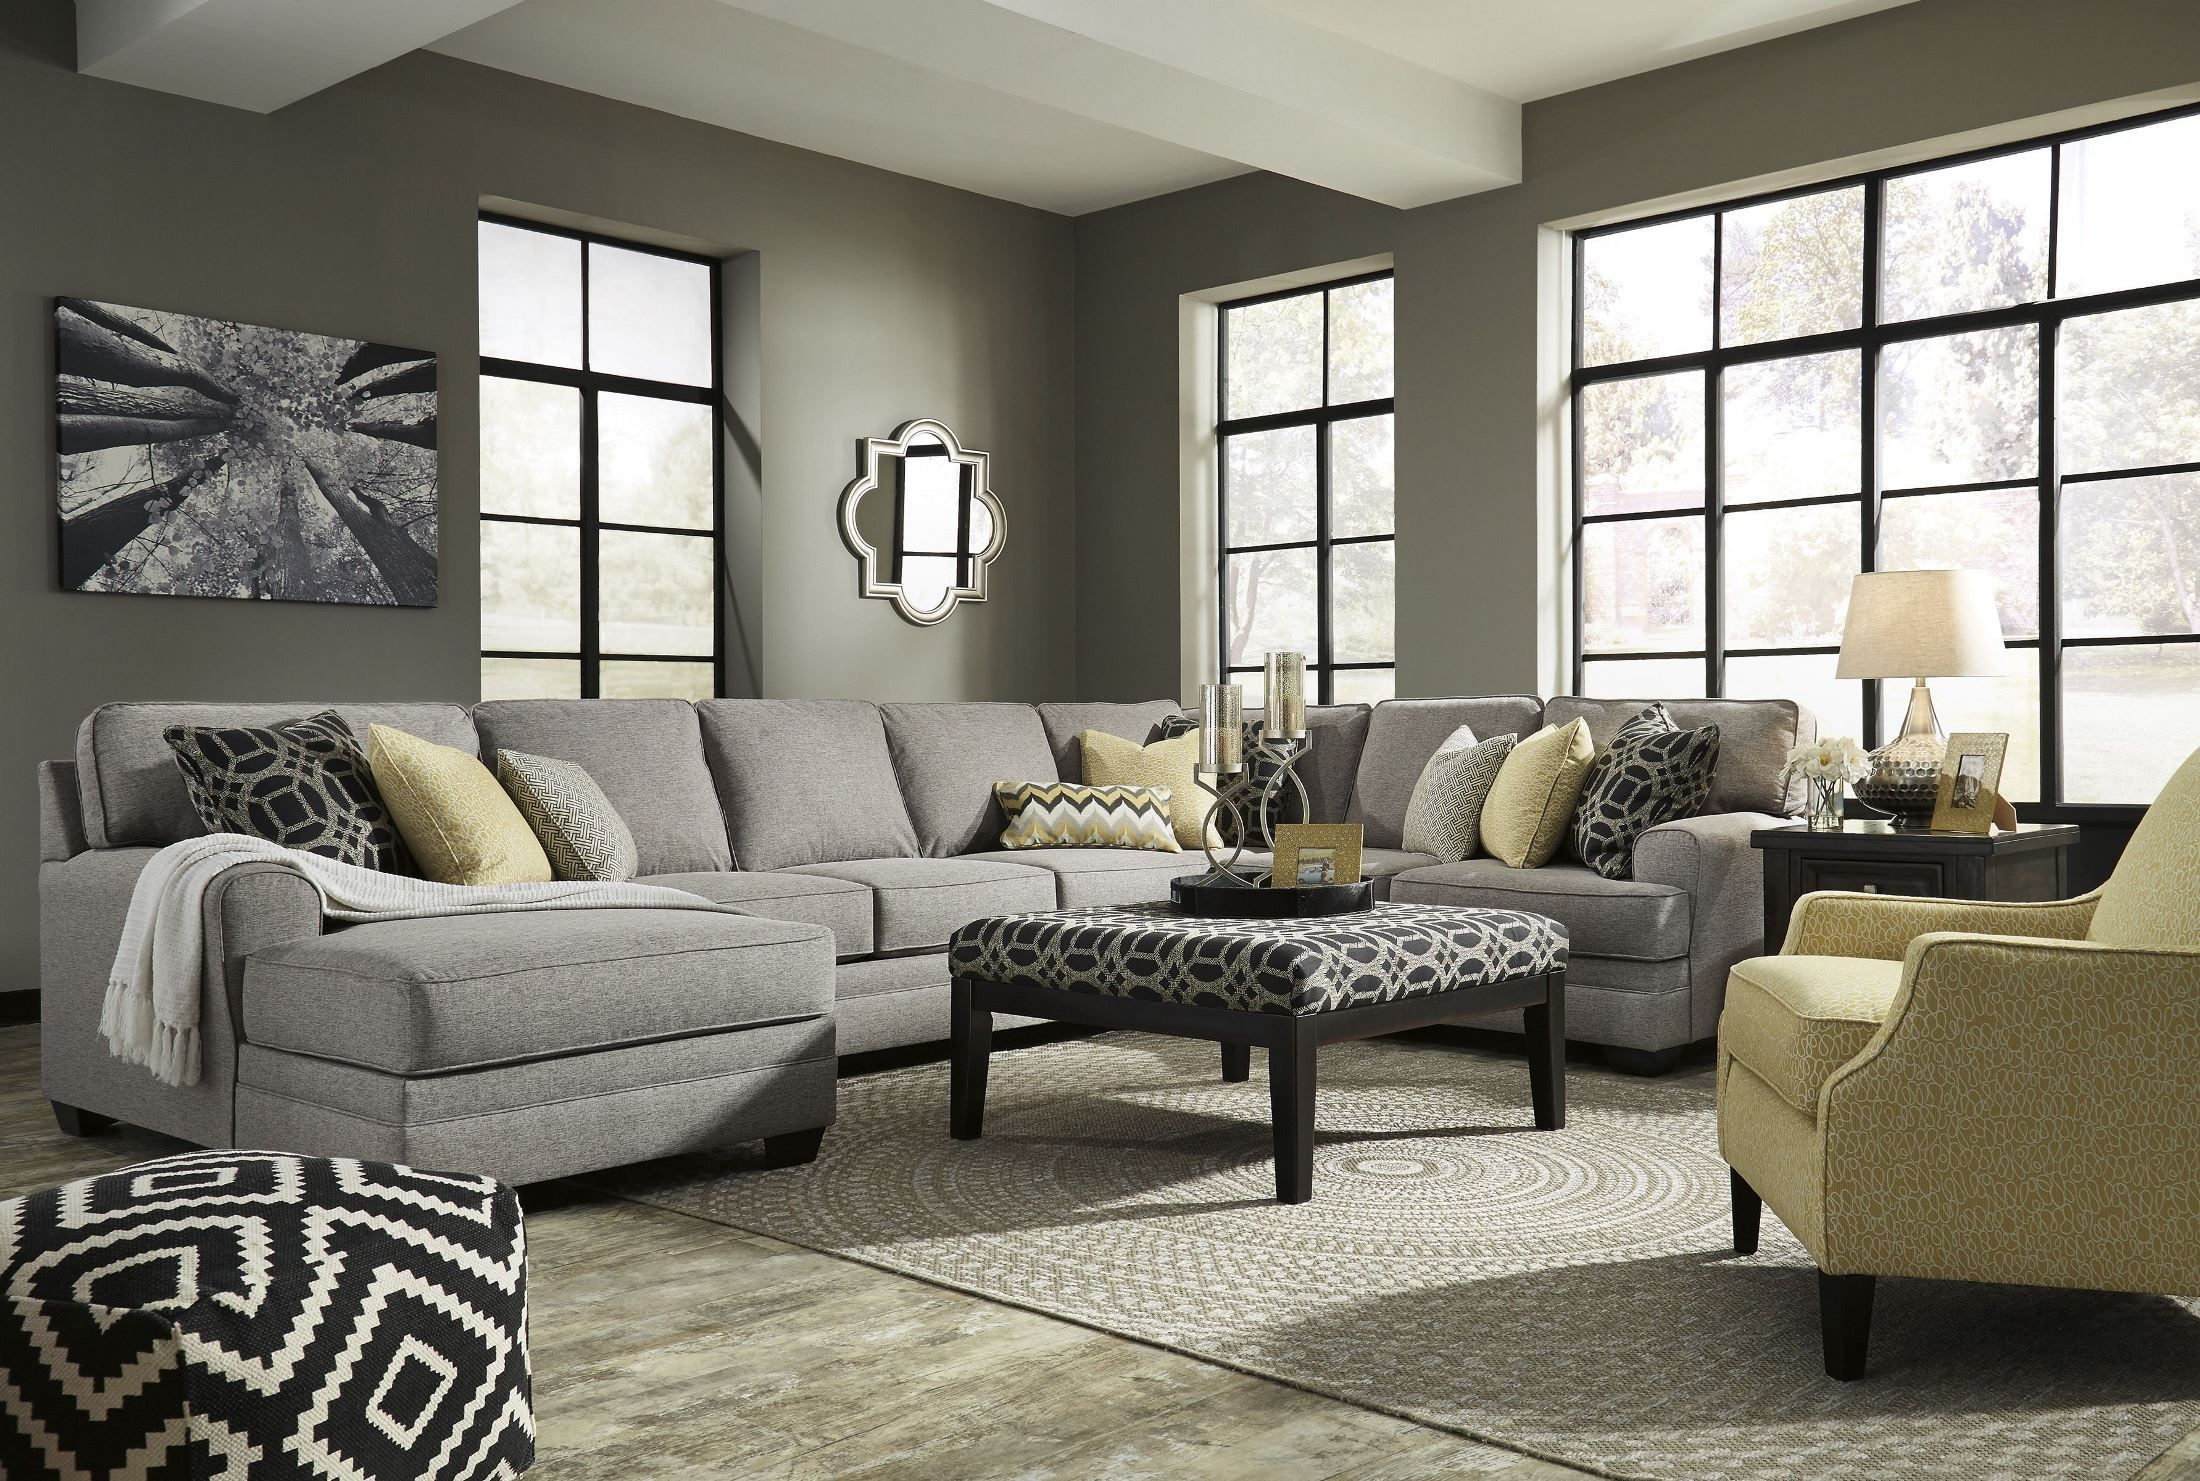 Cresson Pewter LAF Large Chaise Sectional from Ashley  Coleman Furniture